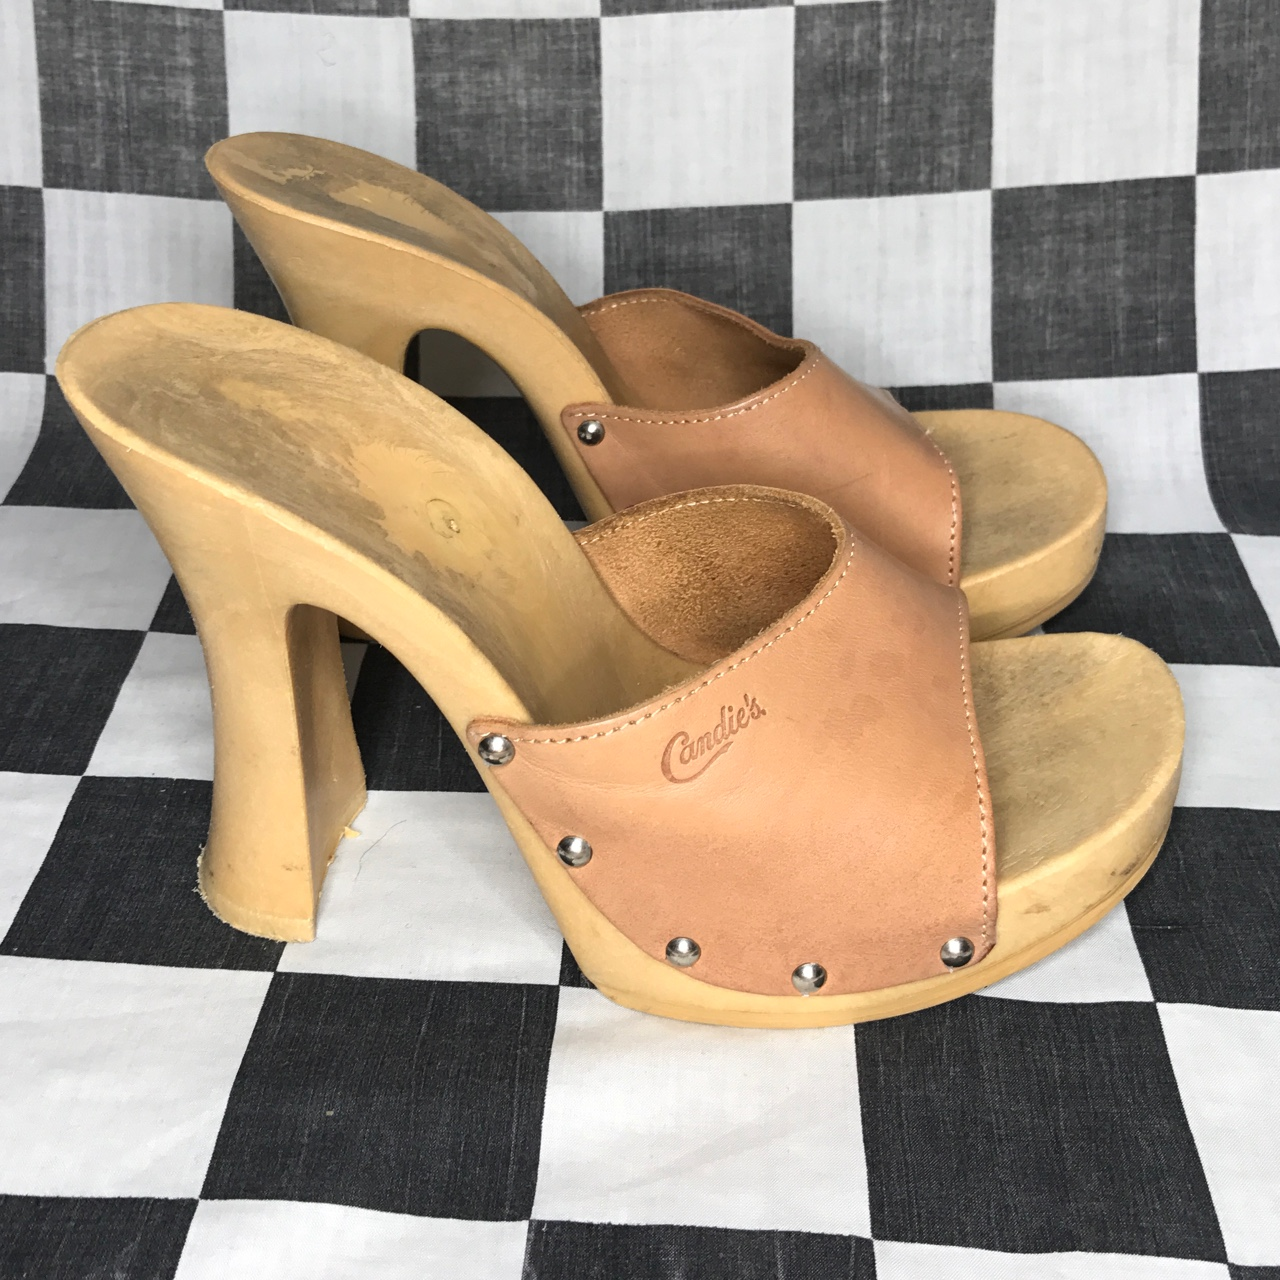 Candies wooden mules. Check out the